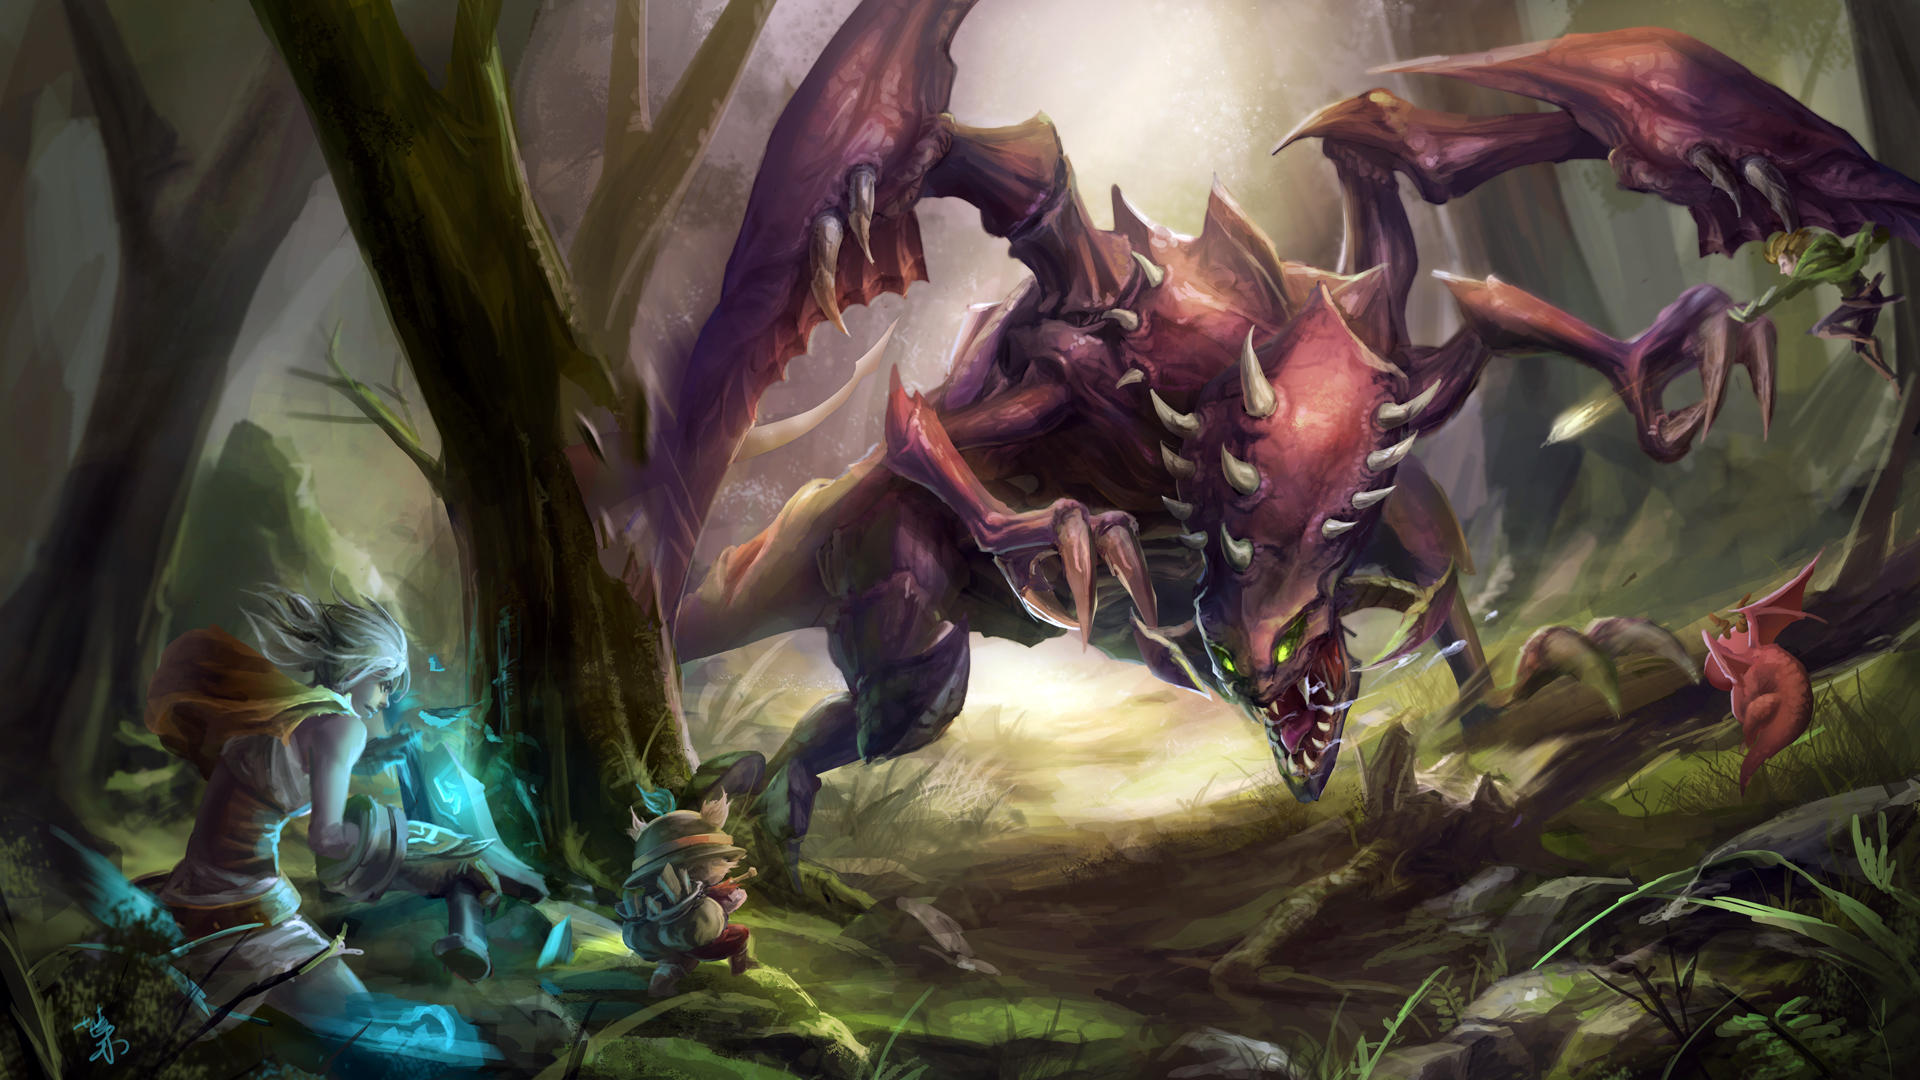 Riven Teemo vs Chogath 7d Wallpaper HD